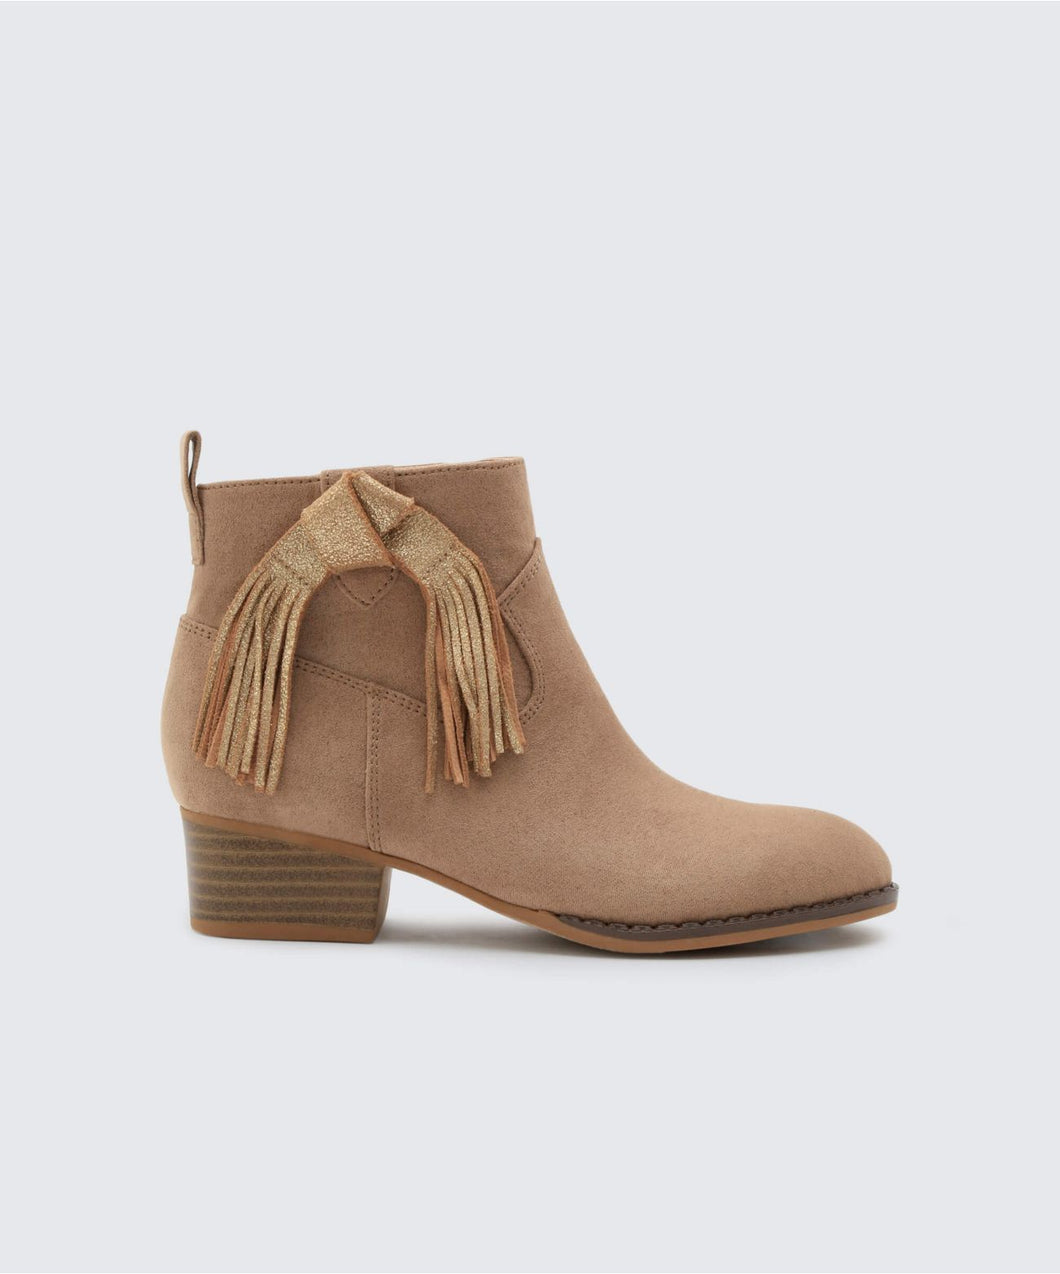 JADA BOOTIES IN ALMOND -   Dolce Vita